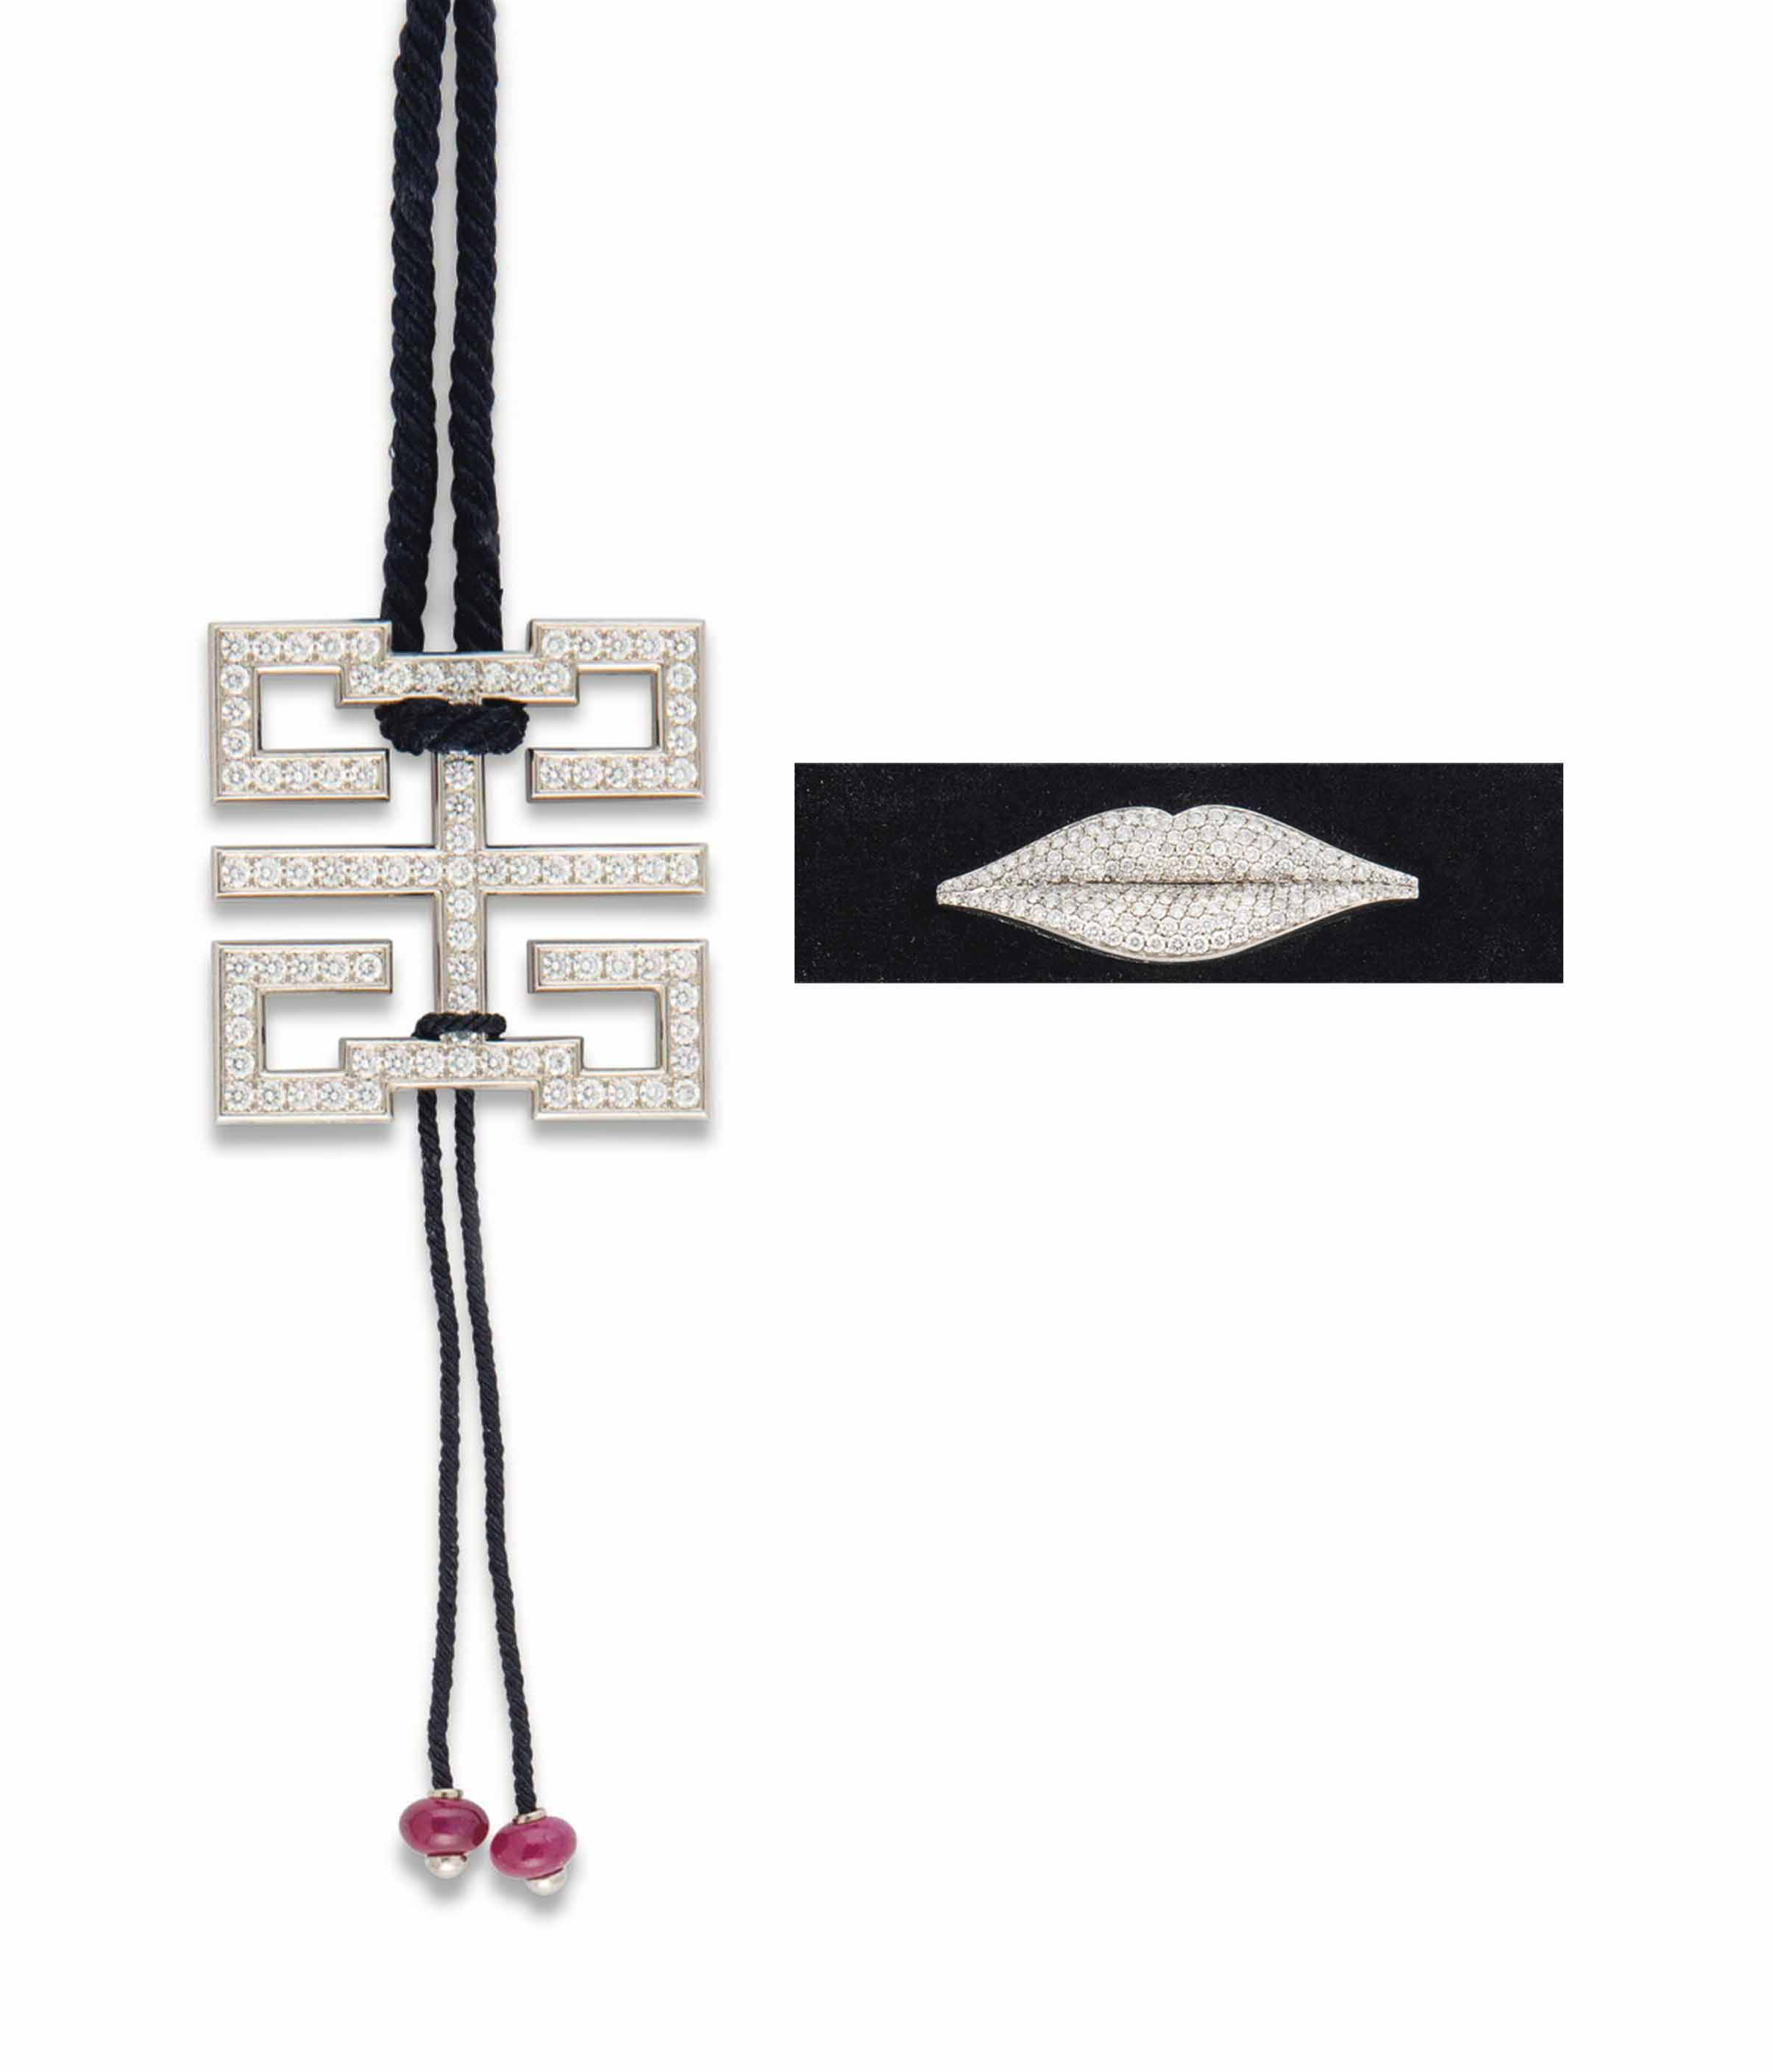 A 'BAISER DU DRAGON' PENDANT NECKLACE, BY CARTIER AND TWO NECKLACES, BY ENIGMA